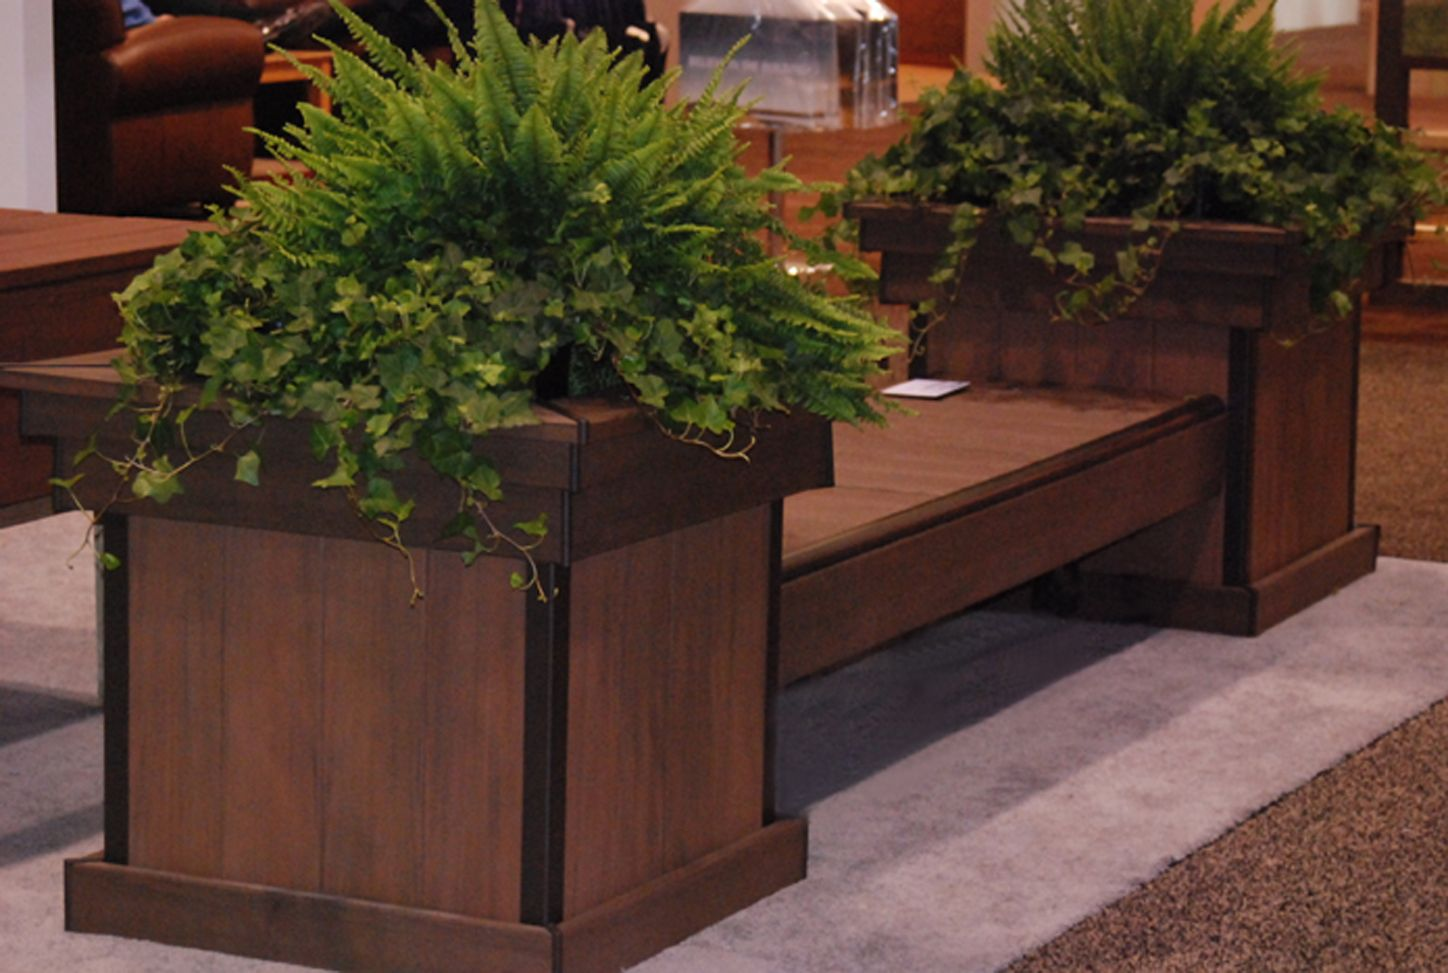 Wooden Decks Build Deck Bench With Planter Boxes